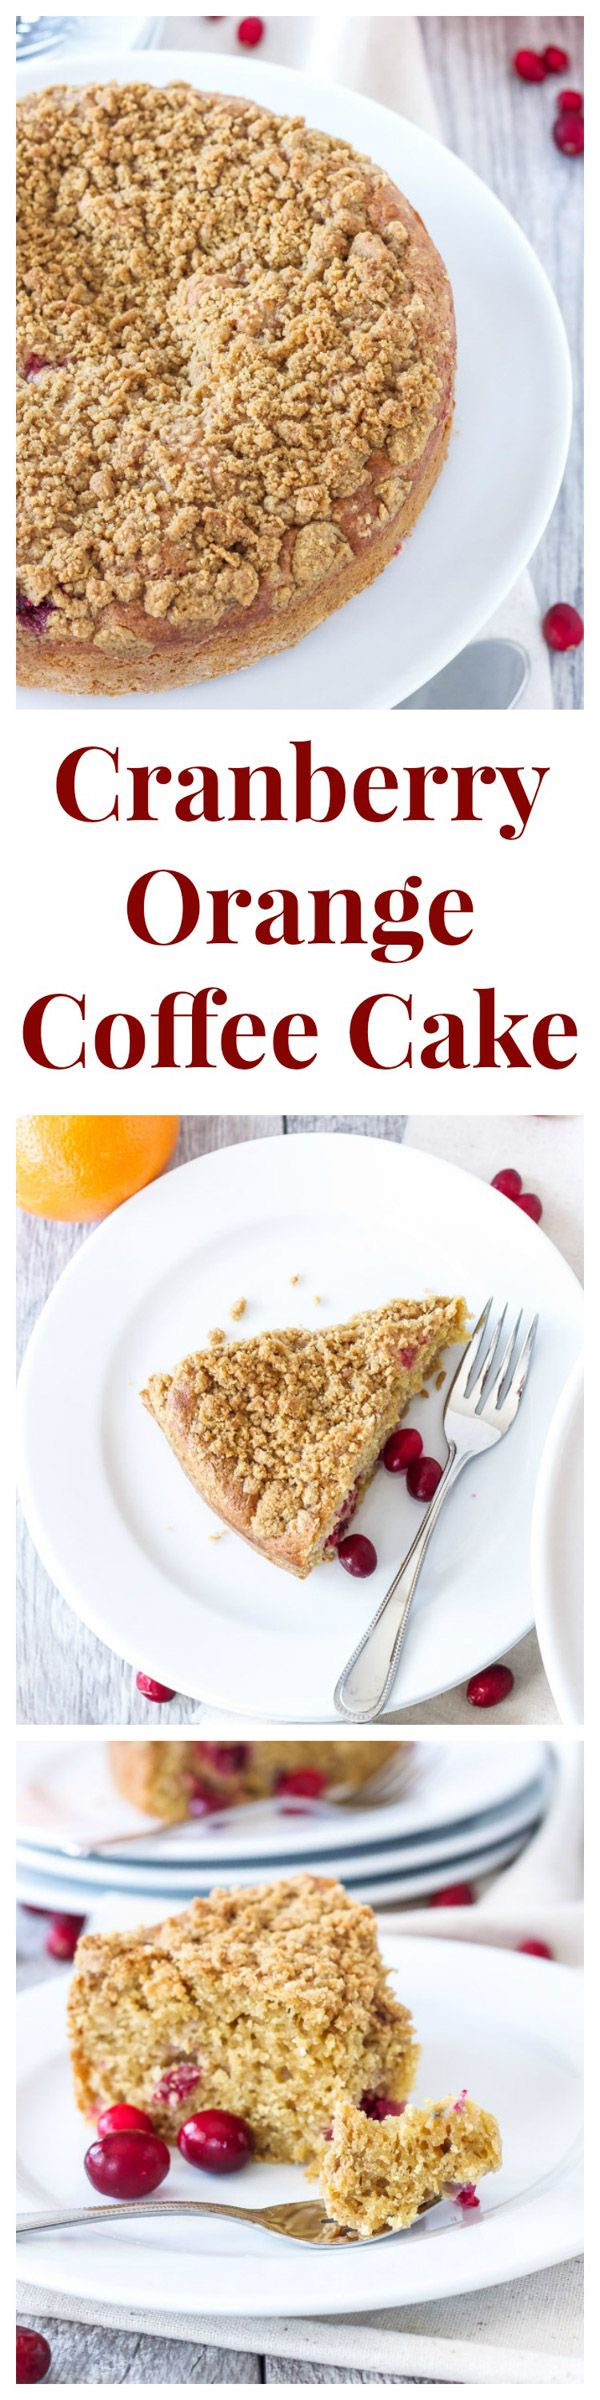 Cranberry Orange Coffee Cake | This moist and healthier coffee cake is ...